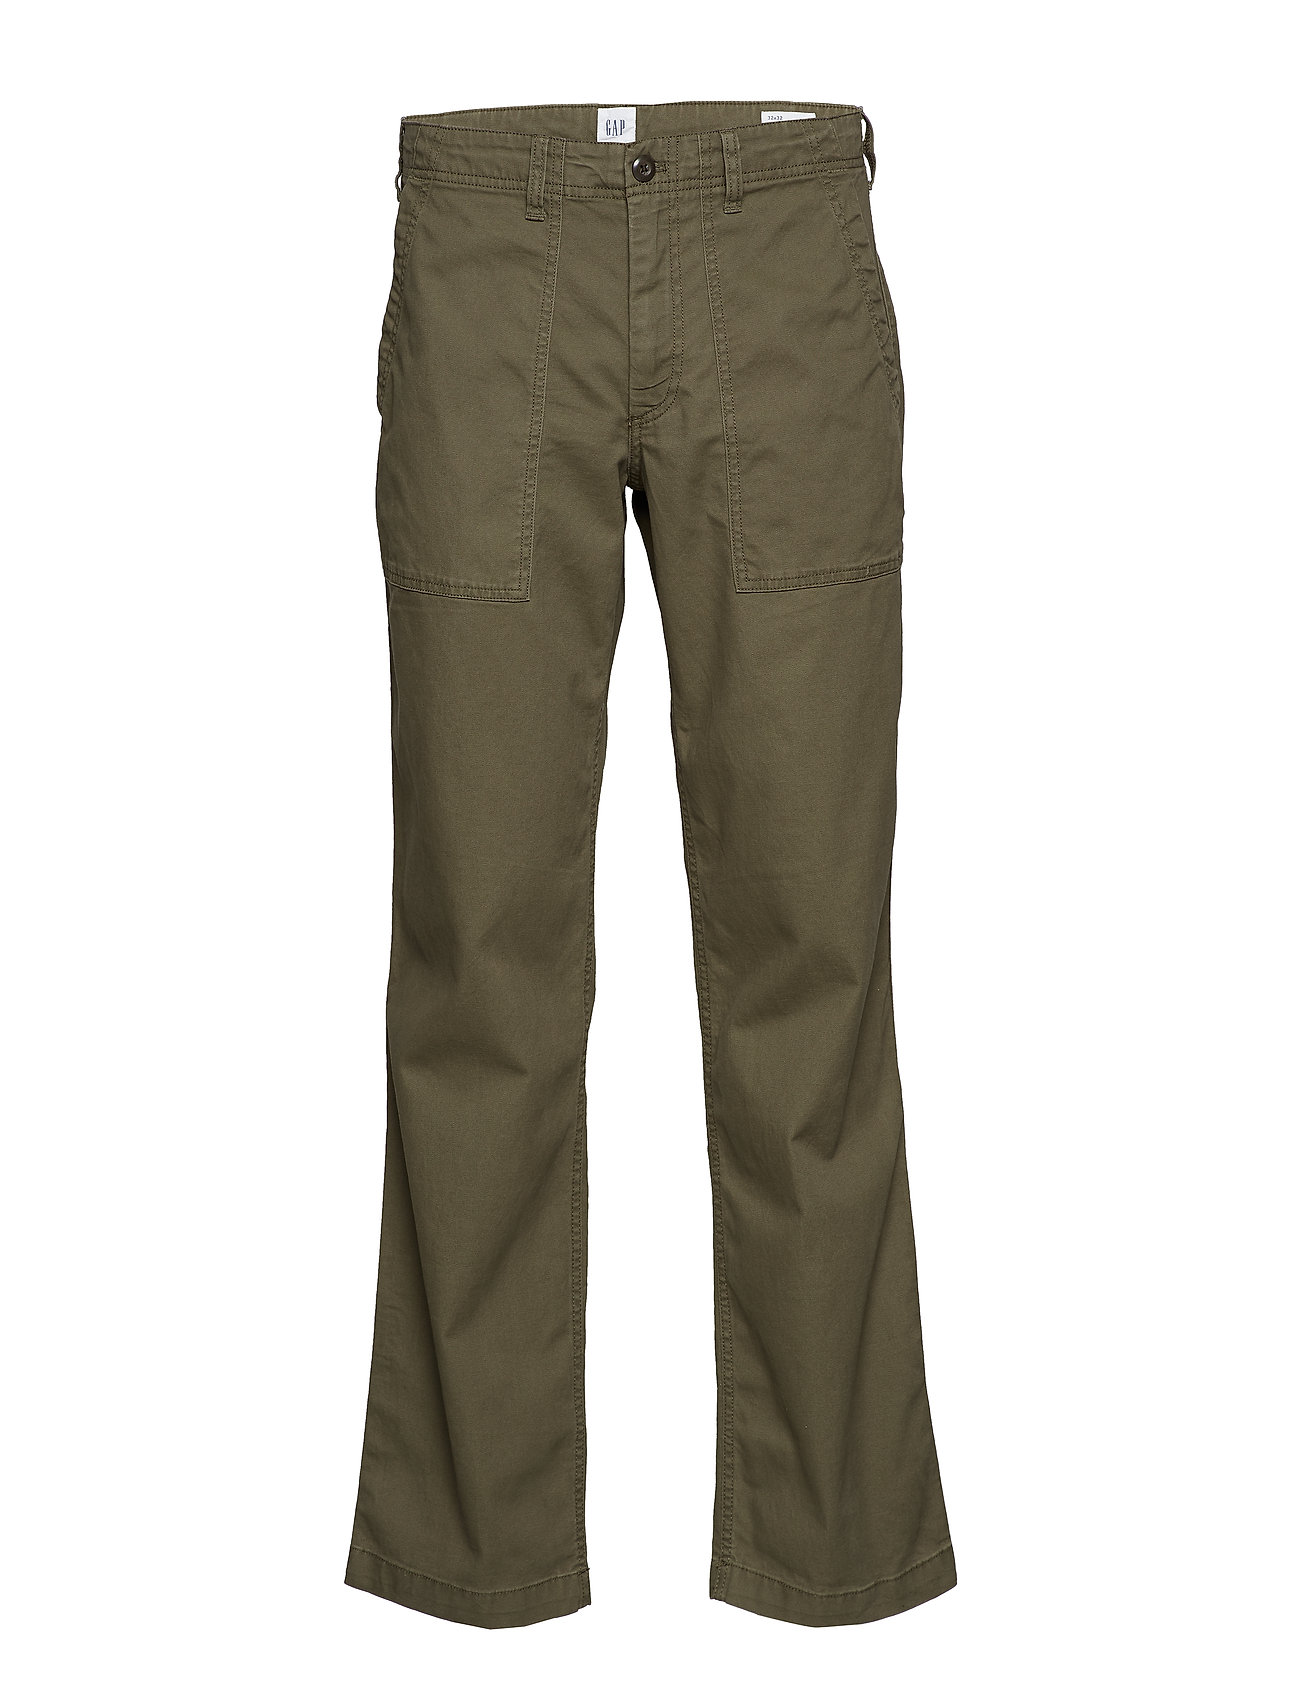 GAP V-STRETCH UTILITY WORK WEAR PANT - SURPLUS